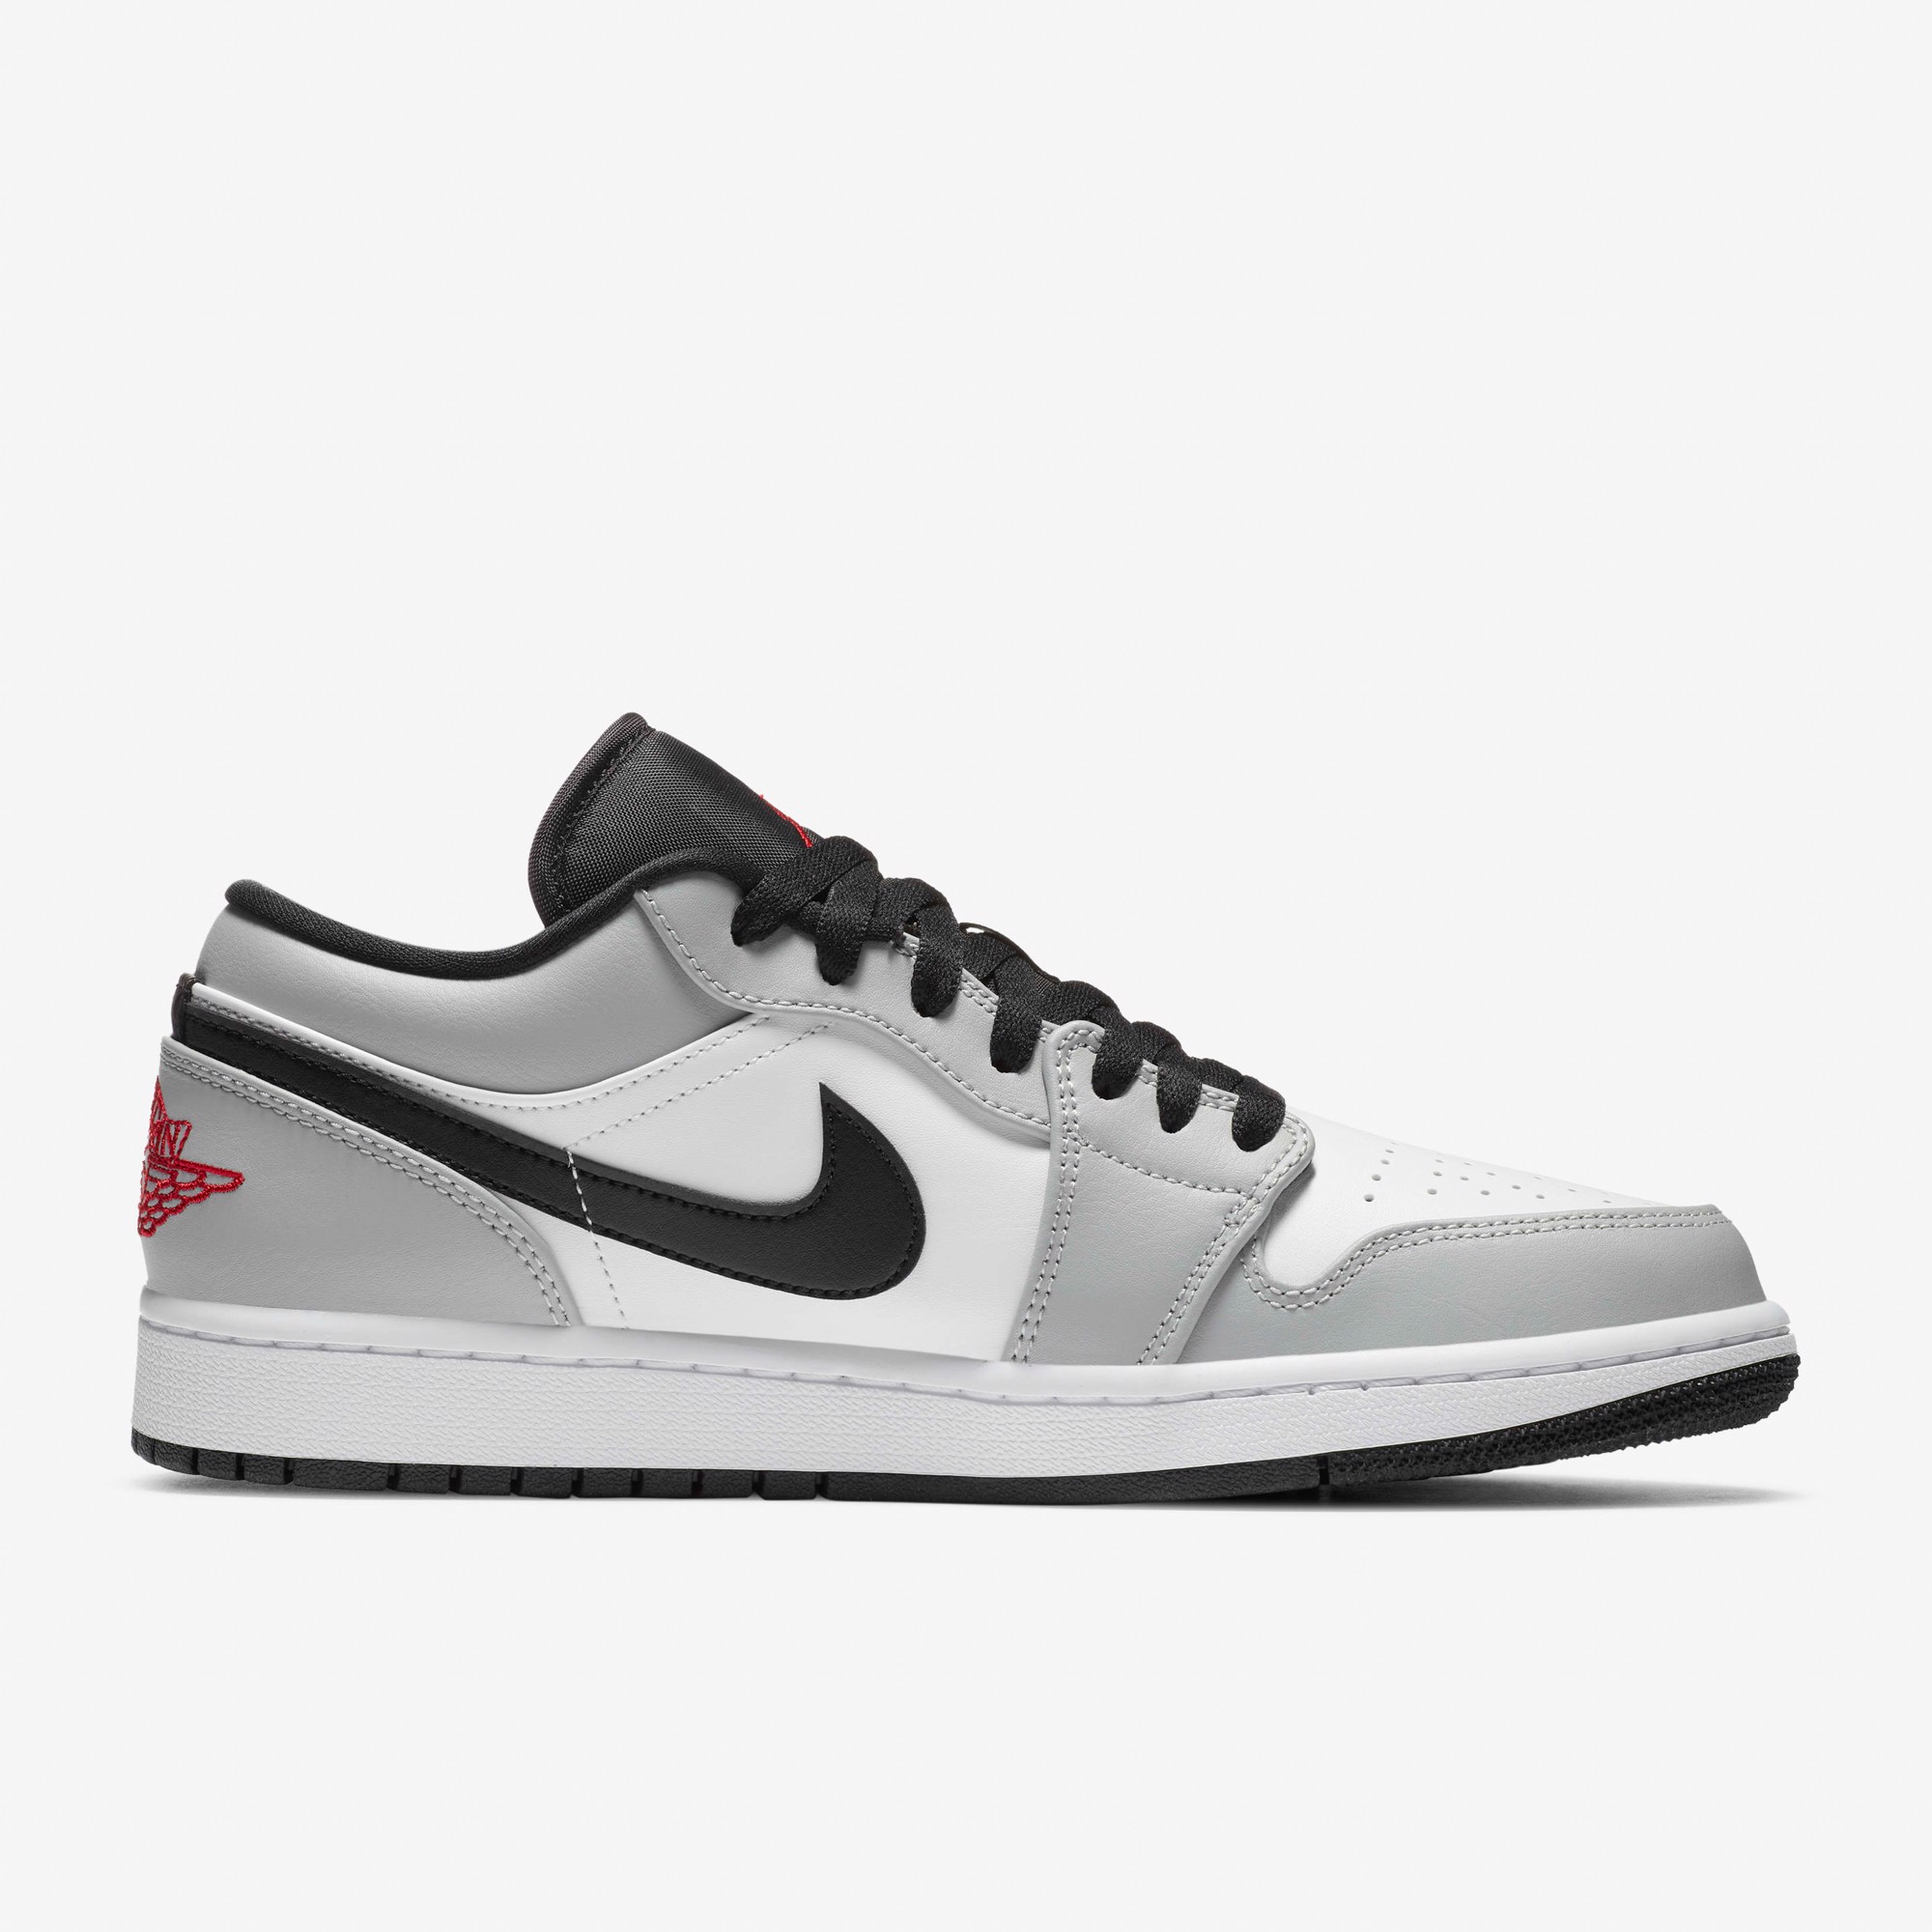 Air Jordan 1 Low - Light Smoke Grey